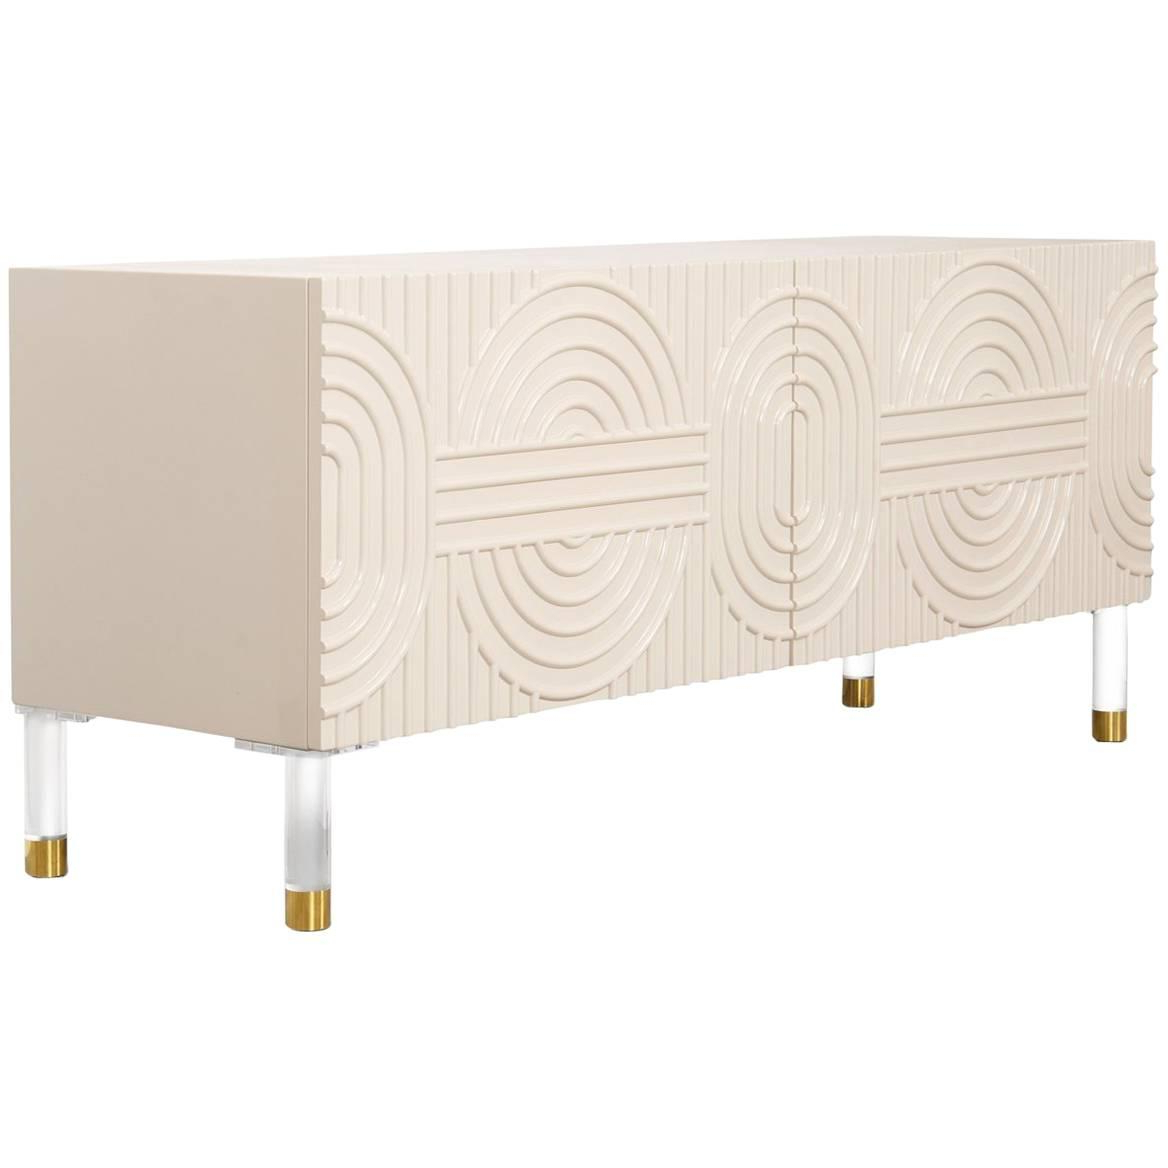 Art Deco Style Blush Pink Three Door Credenza With Geometric Detail & Brass Legs Intended For Blush Deco Credenzas (View 18 of 20)